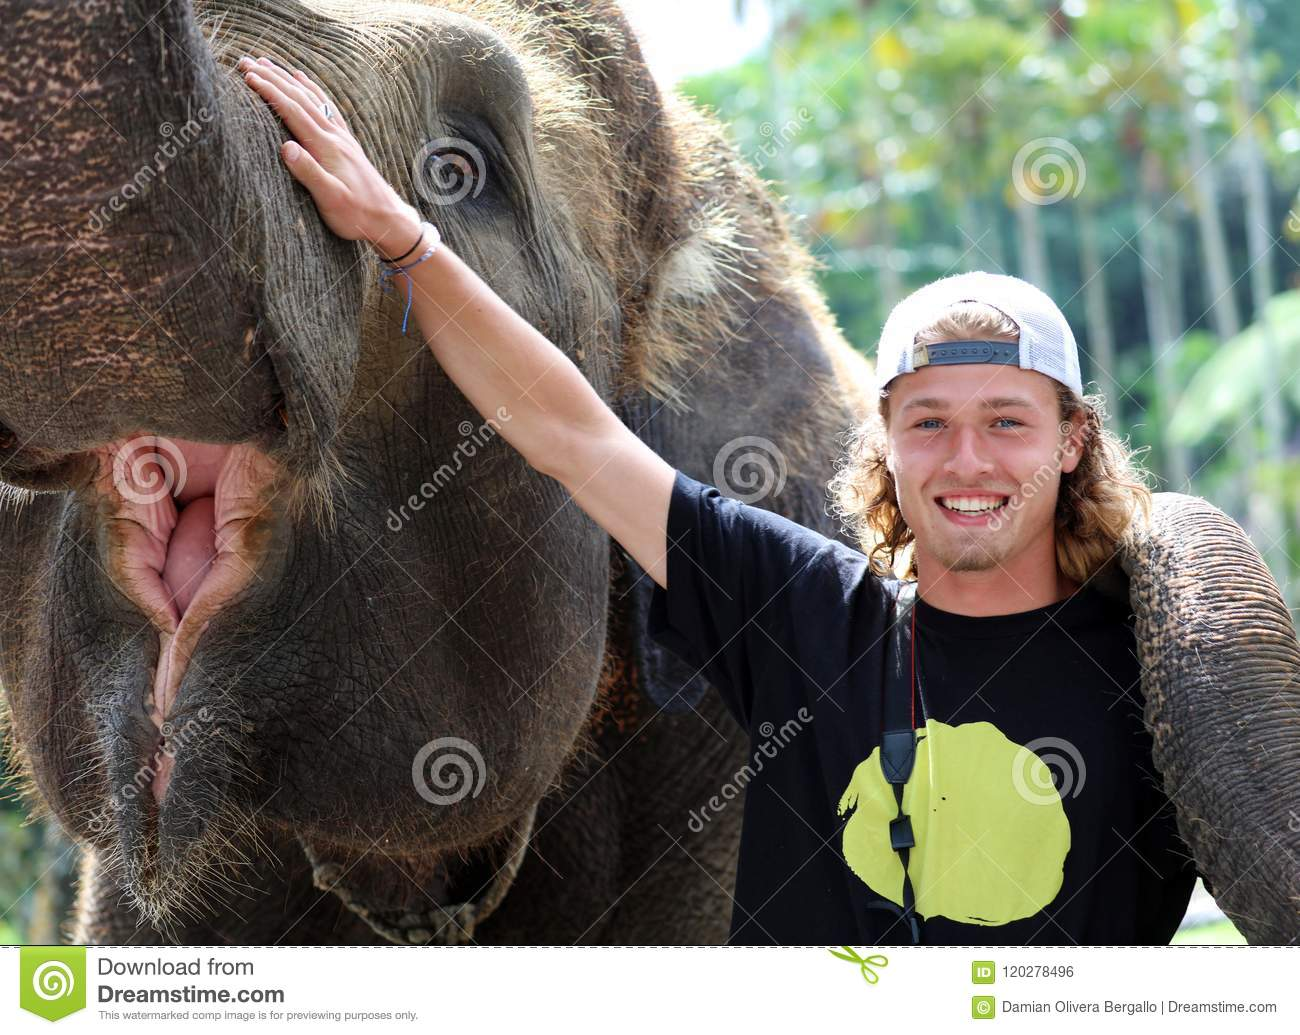 Beautiful unique elephant with man tourist at an elephants conservation reservation in Bali Indonesia